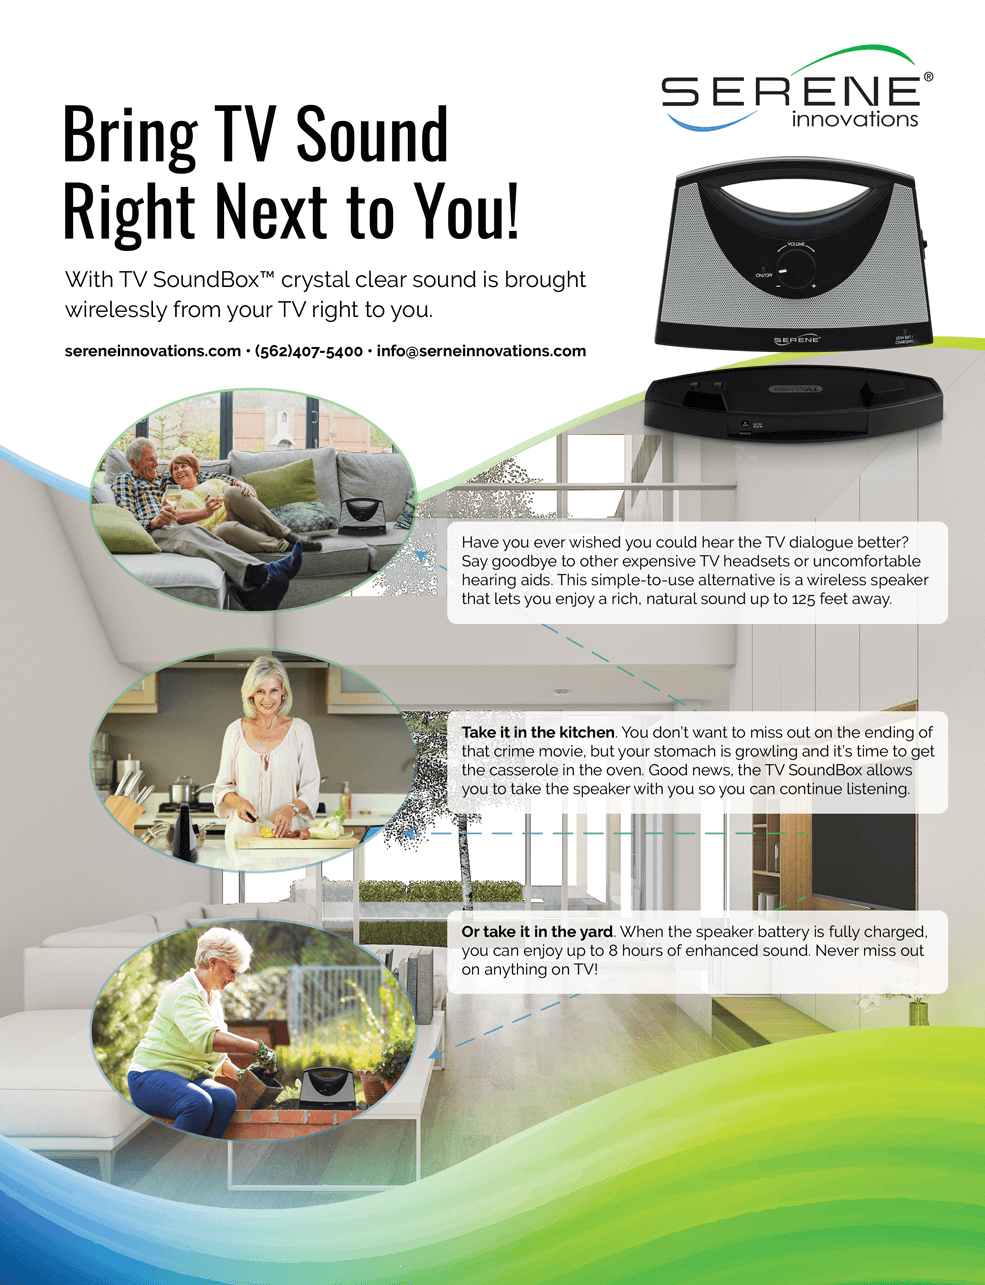 Serene Innovations - Bring TV Sound Right Next to You! Magazine Ad